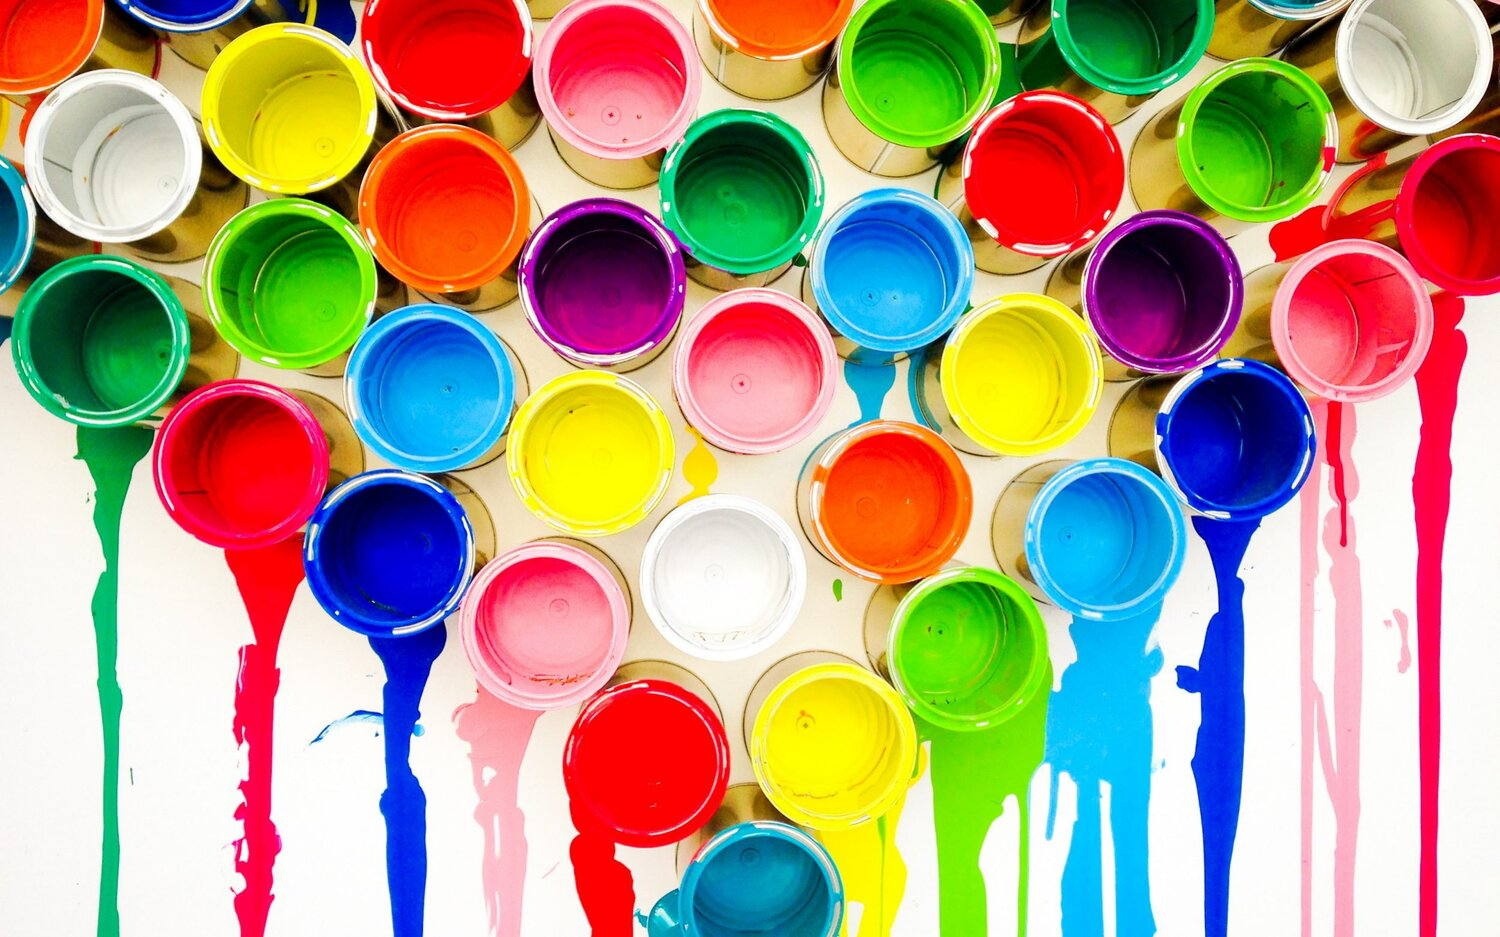 Multiple paint cans of different colors dripping paint